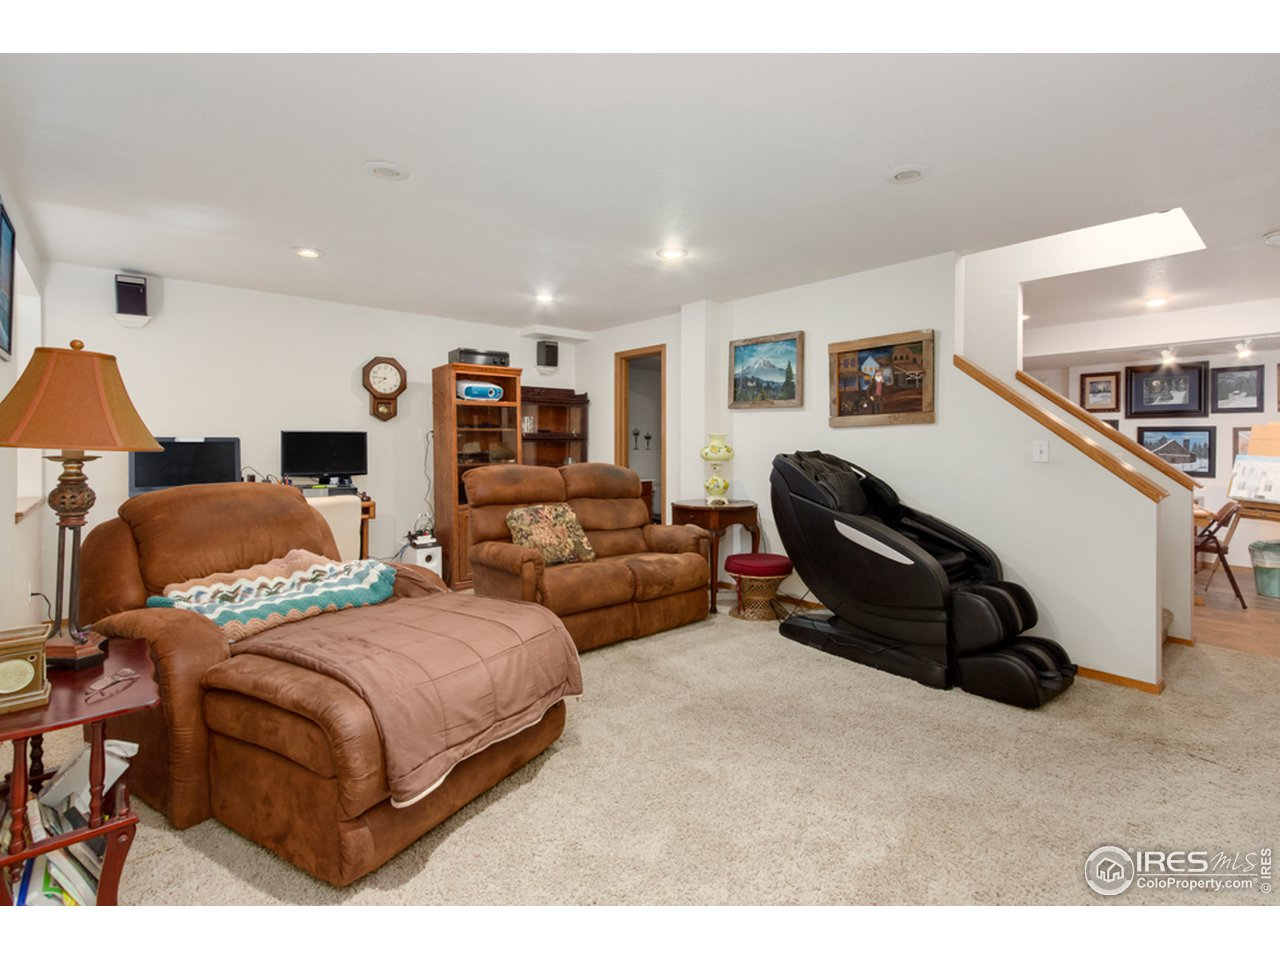 Basement Family/Media Room With Master Bedroom Option